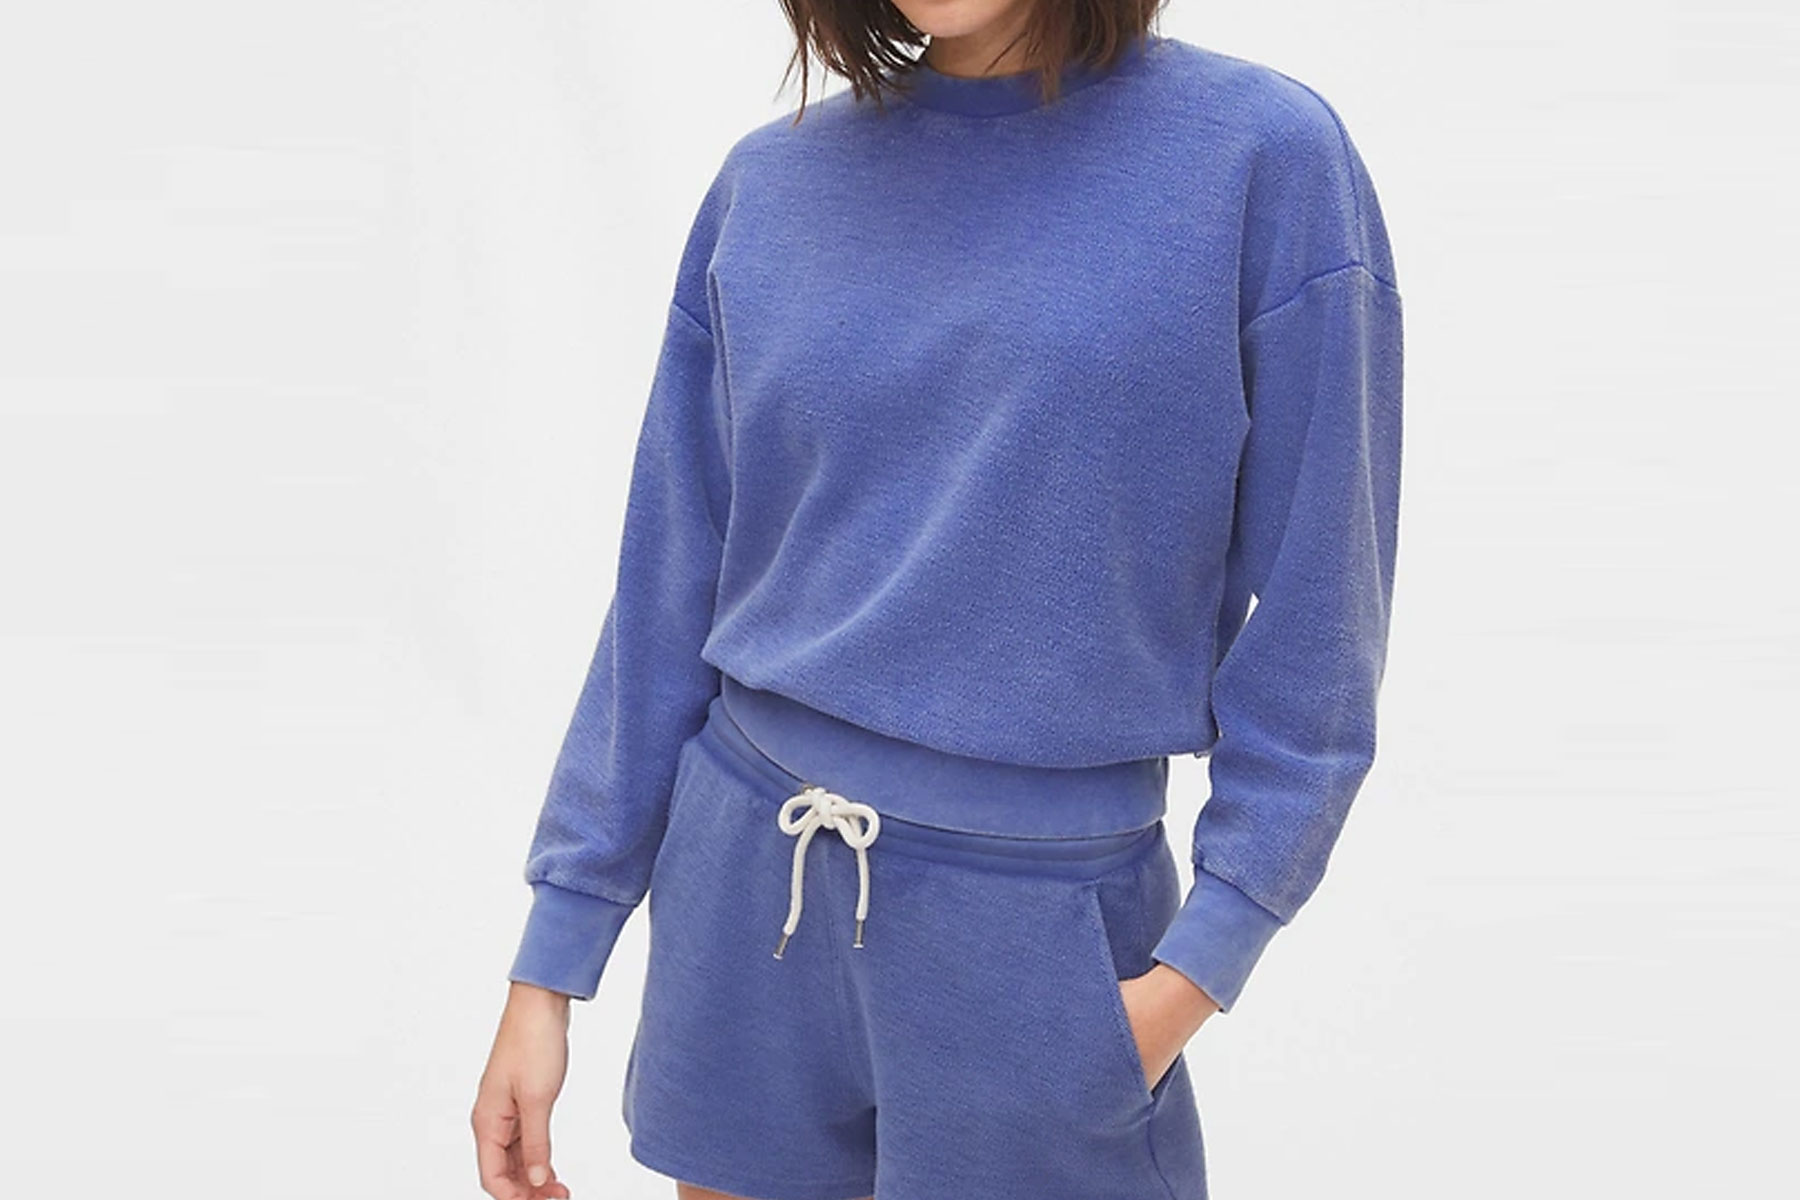 Gap Cropped French Terry Pullover Sweater